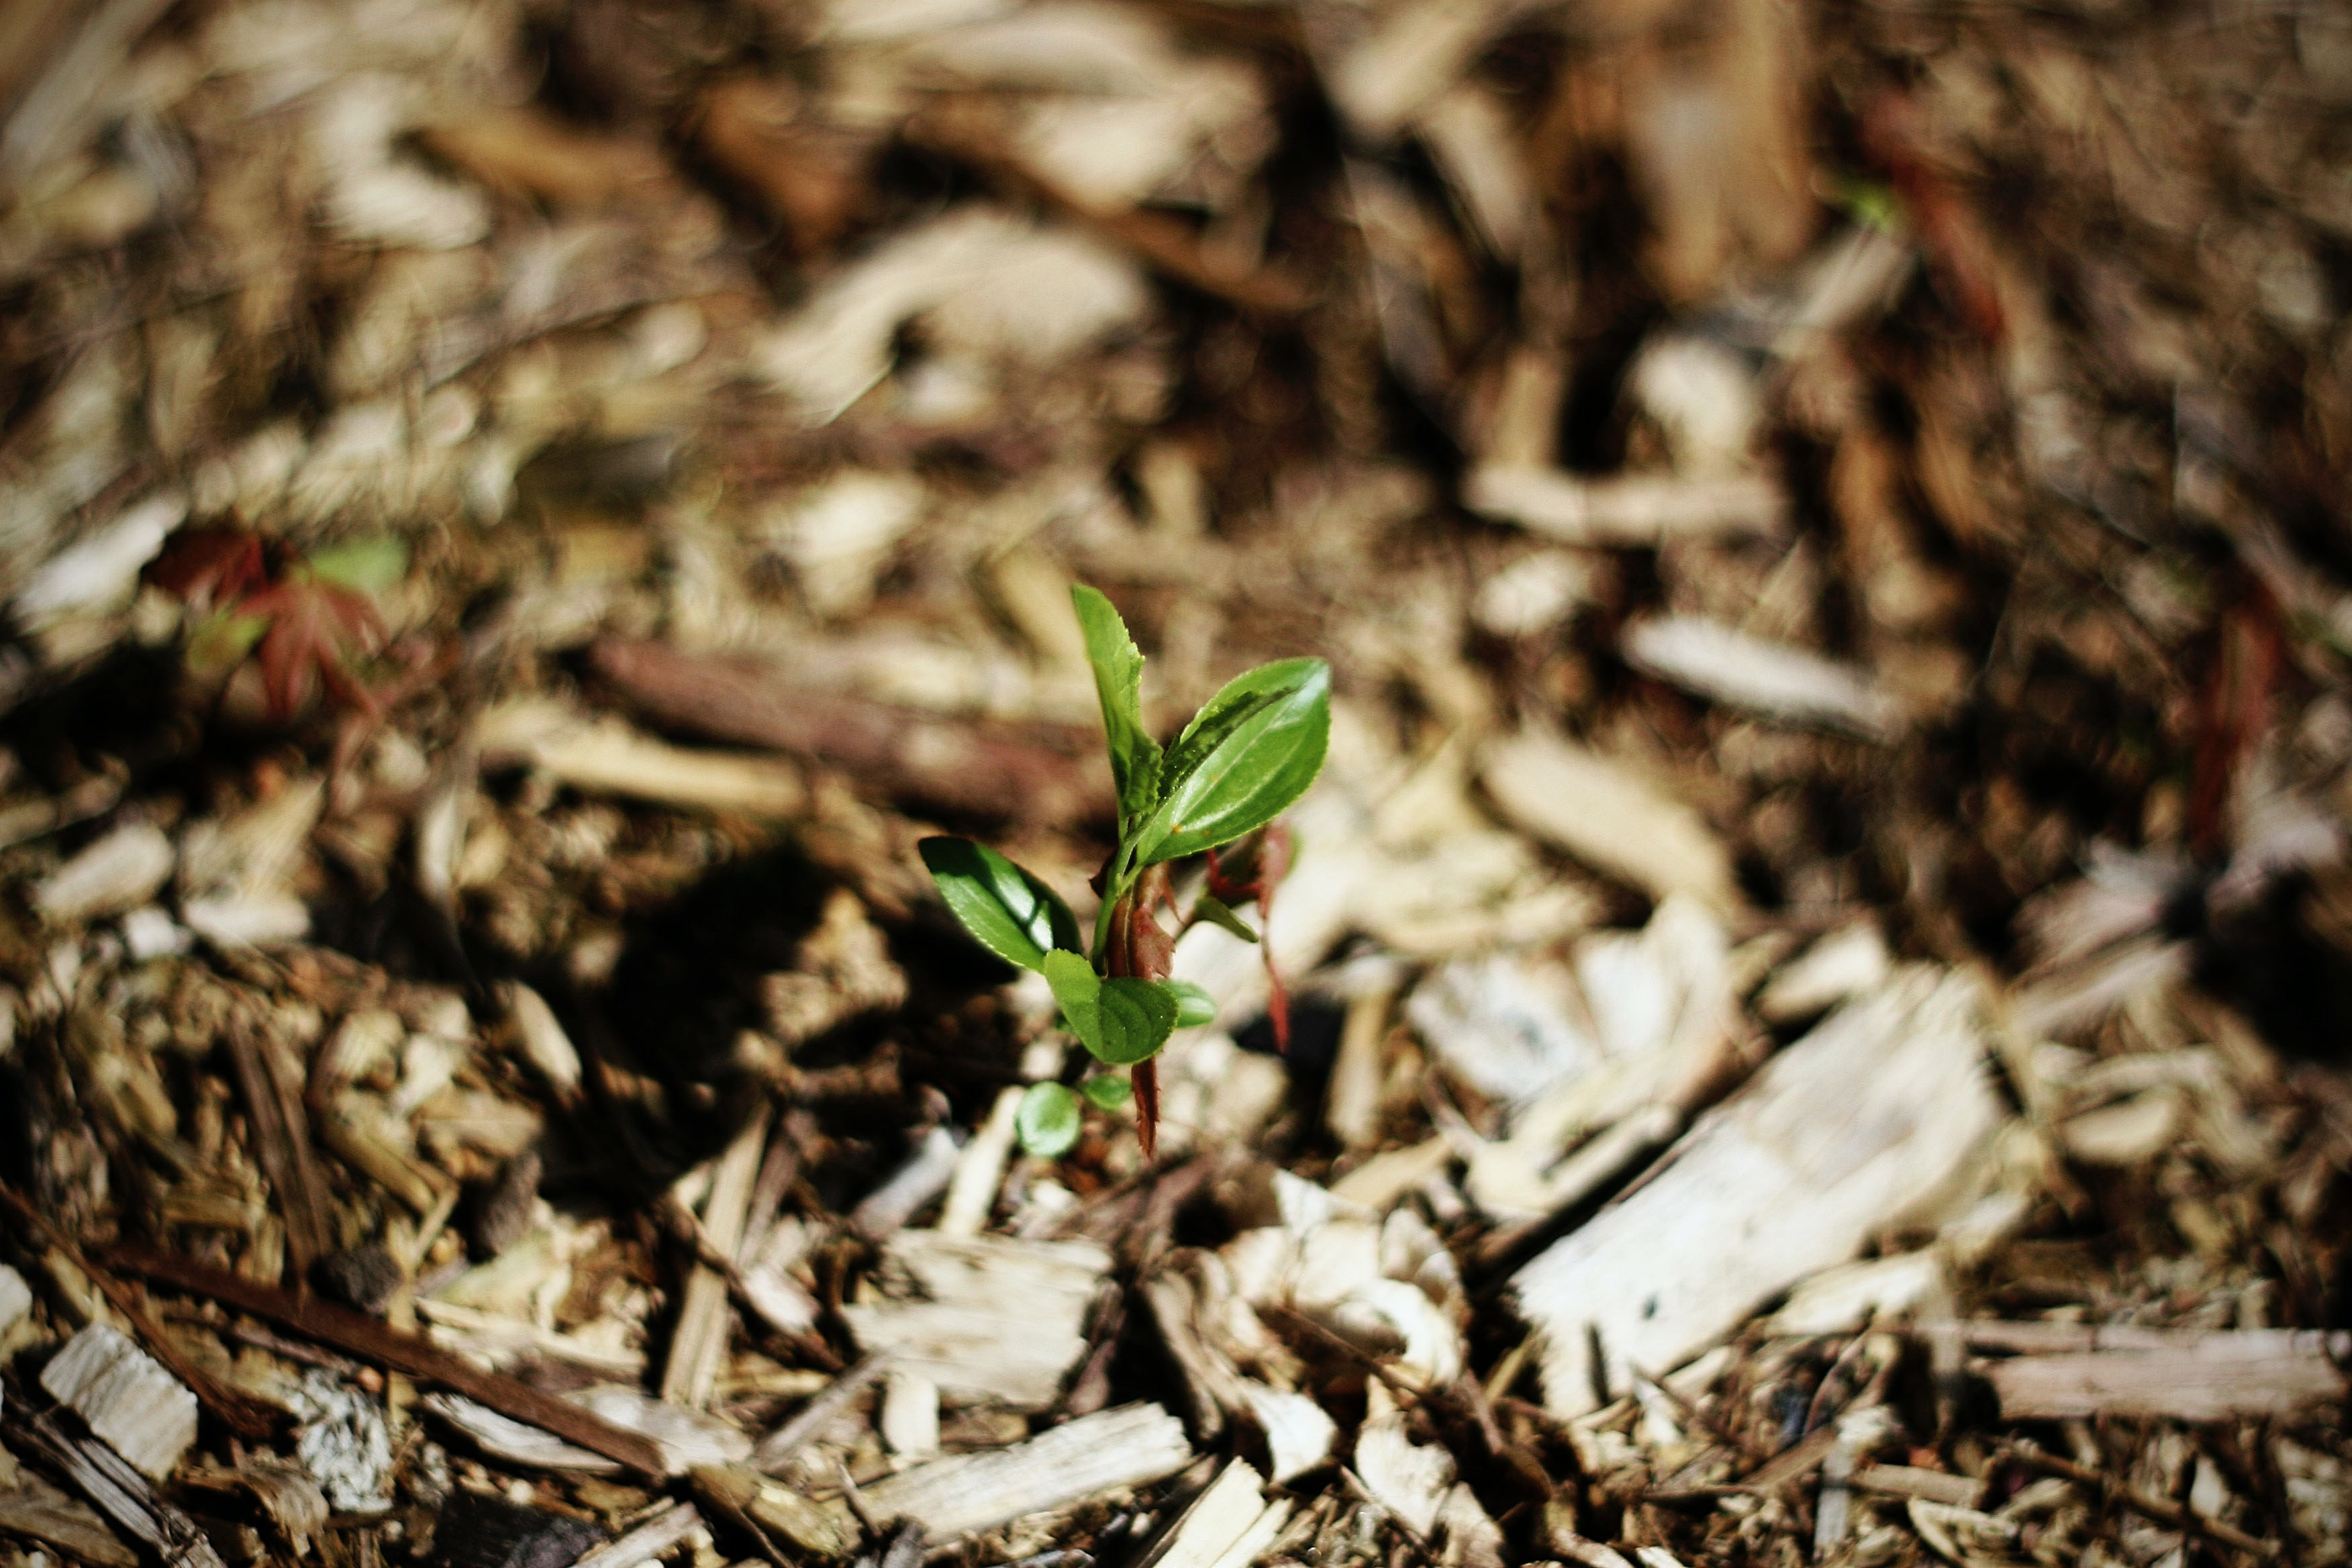 A healthy seedling grows out of a bed of mulch, which helps to increase root zone temperature